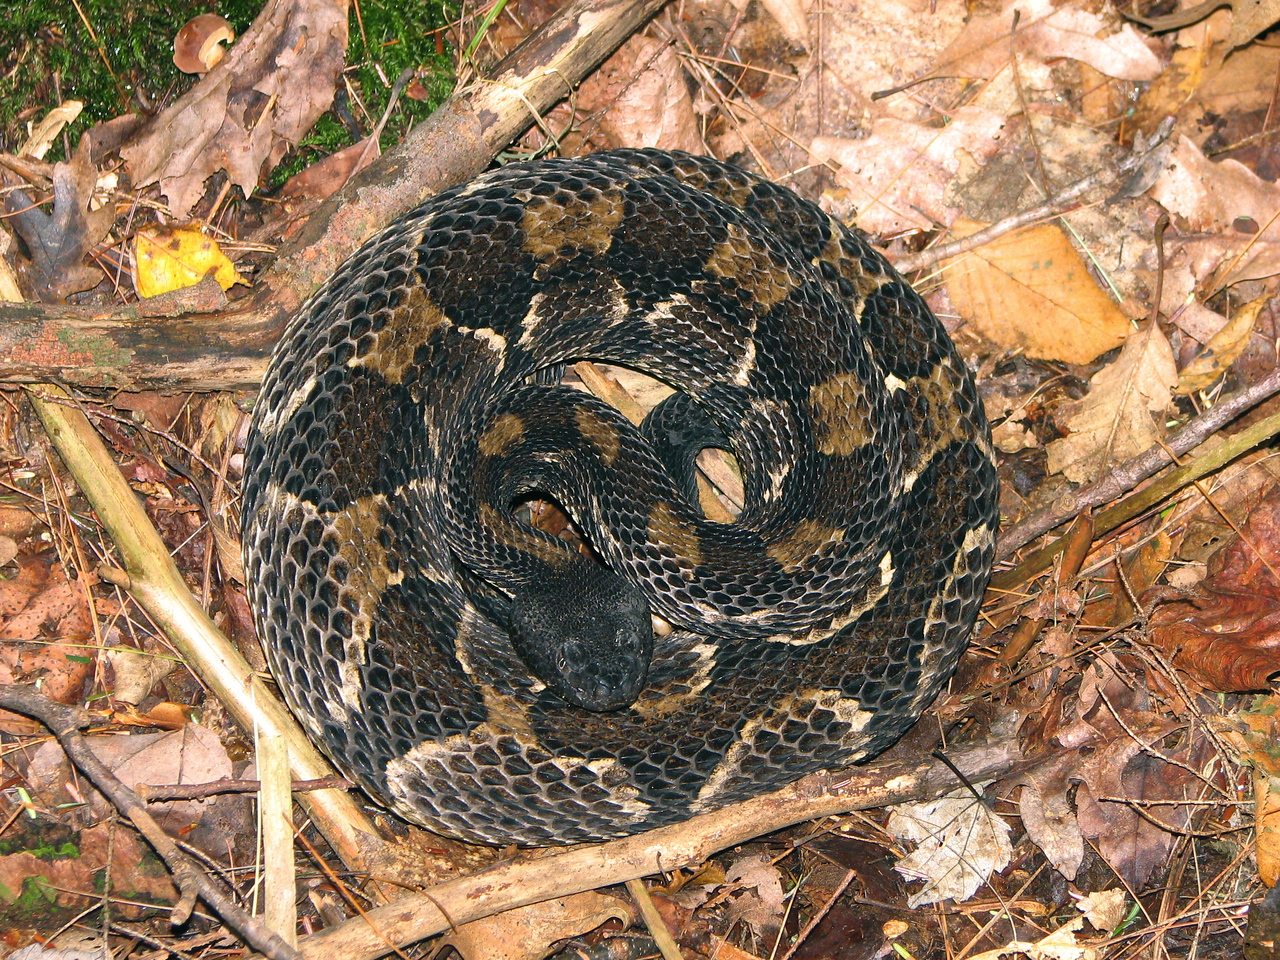 Timber rattlesnake on fall day near Penn's Creek.  It was a calm and docile snake despite its fearsome looks.